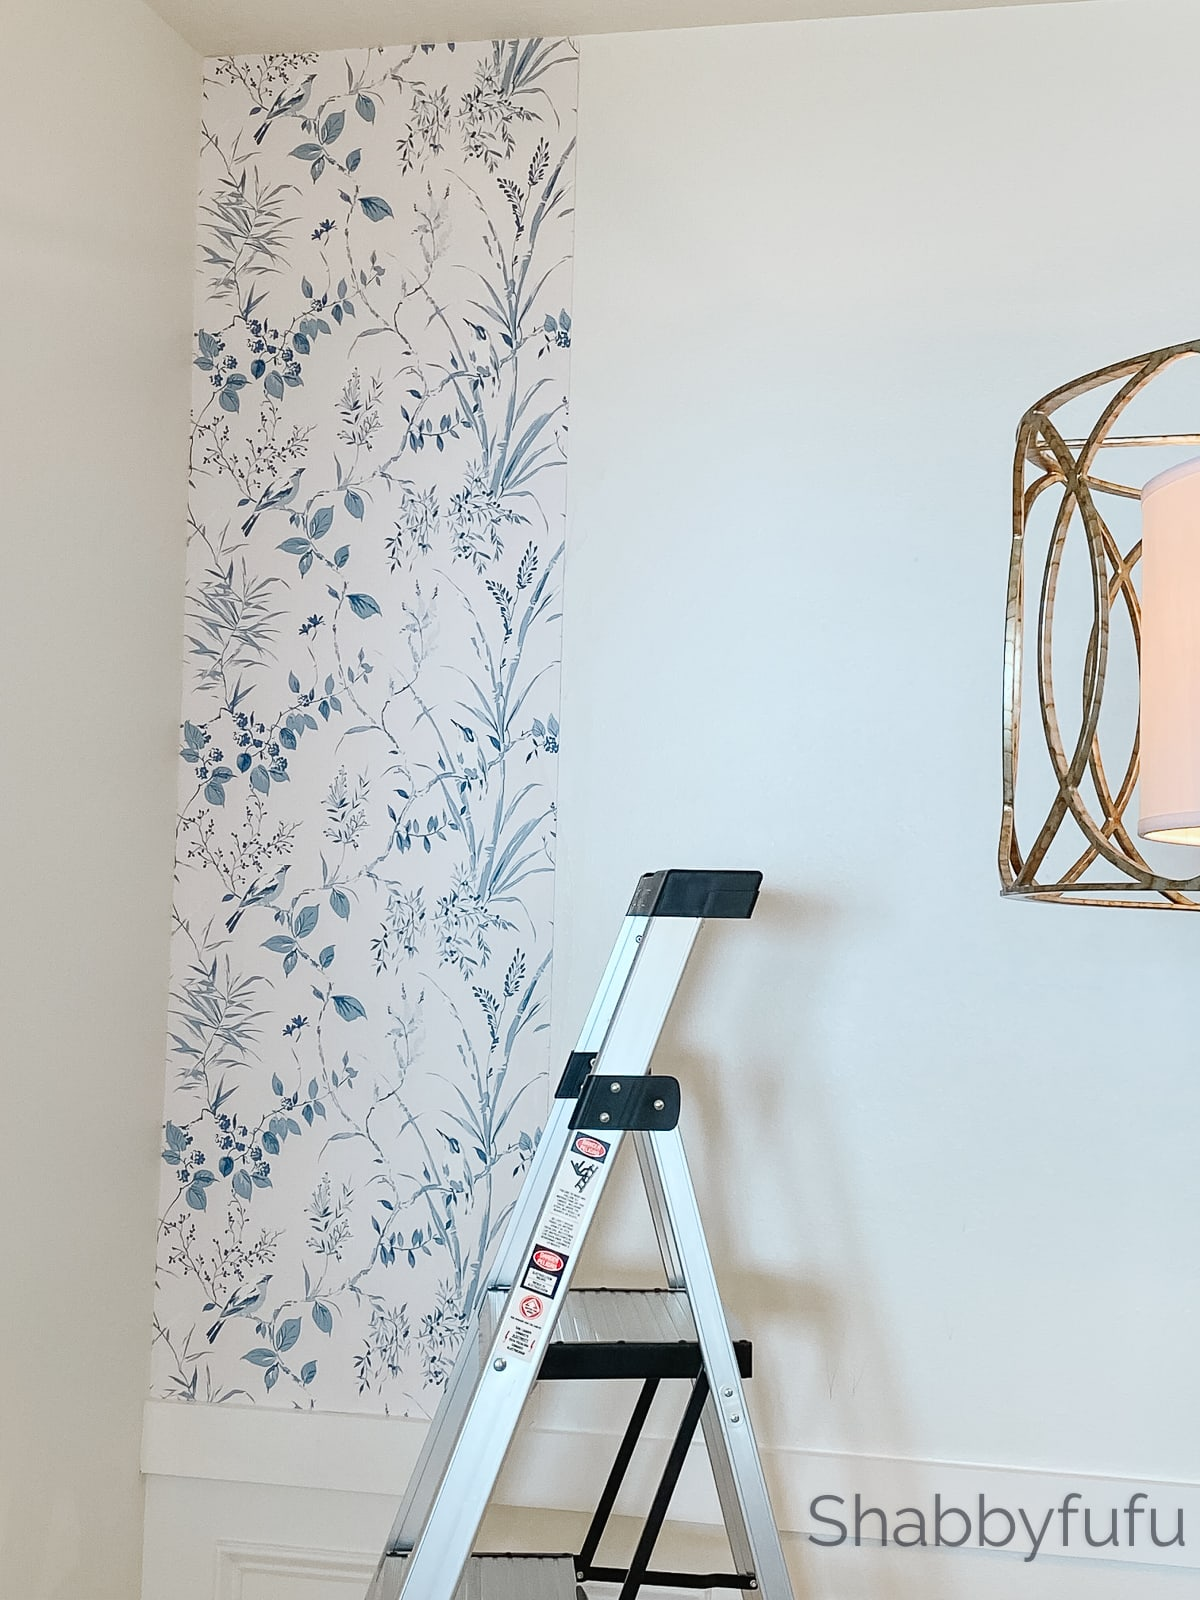 floral and bird wallpaper in the style of Gracie wallpaper